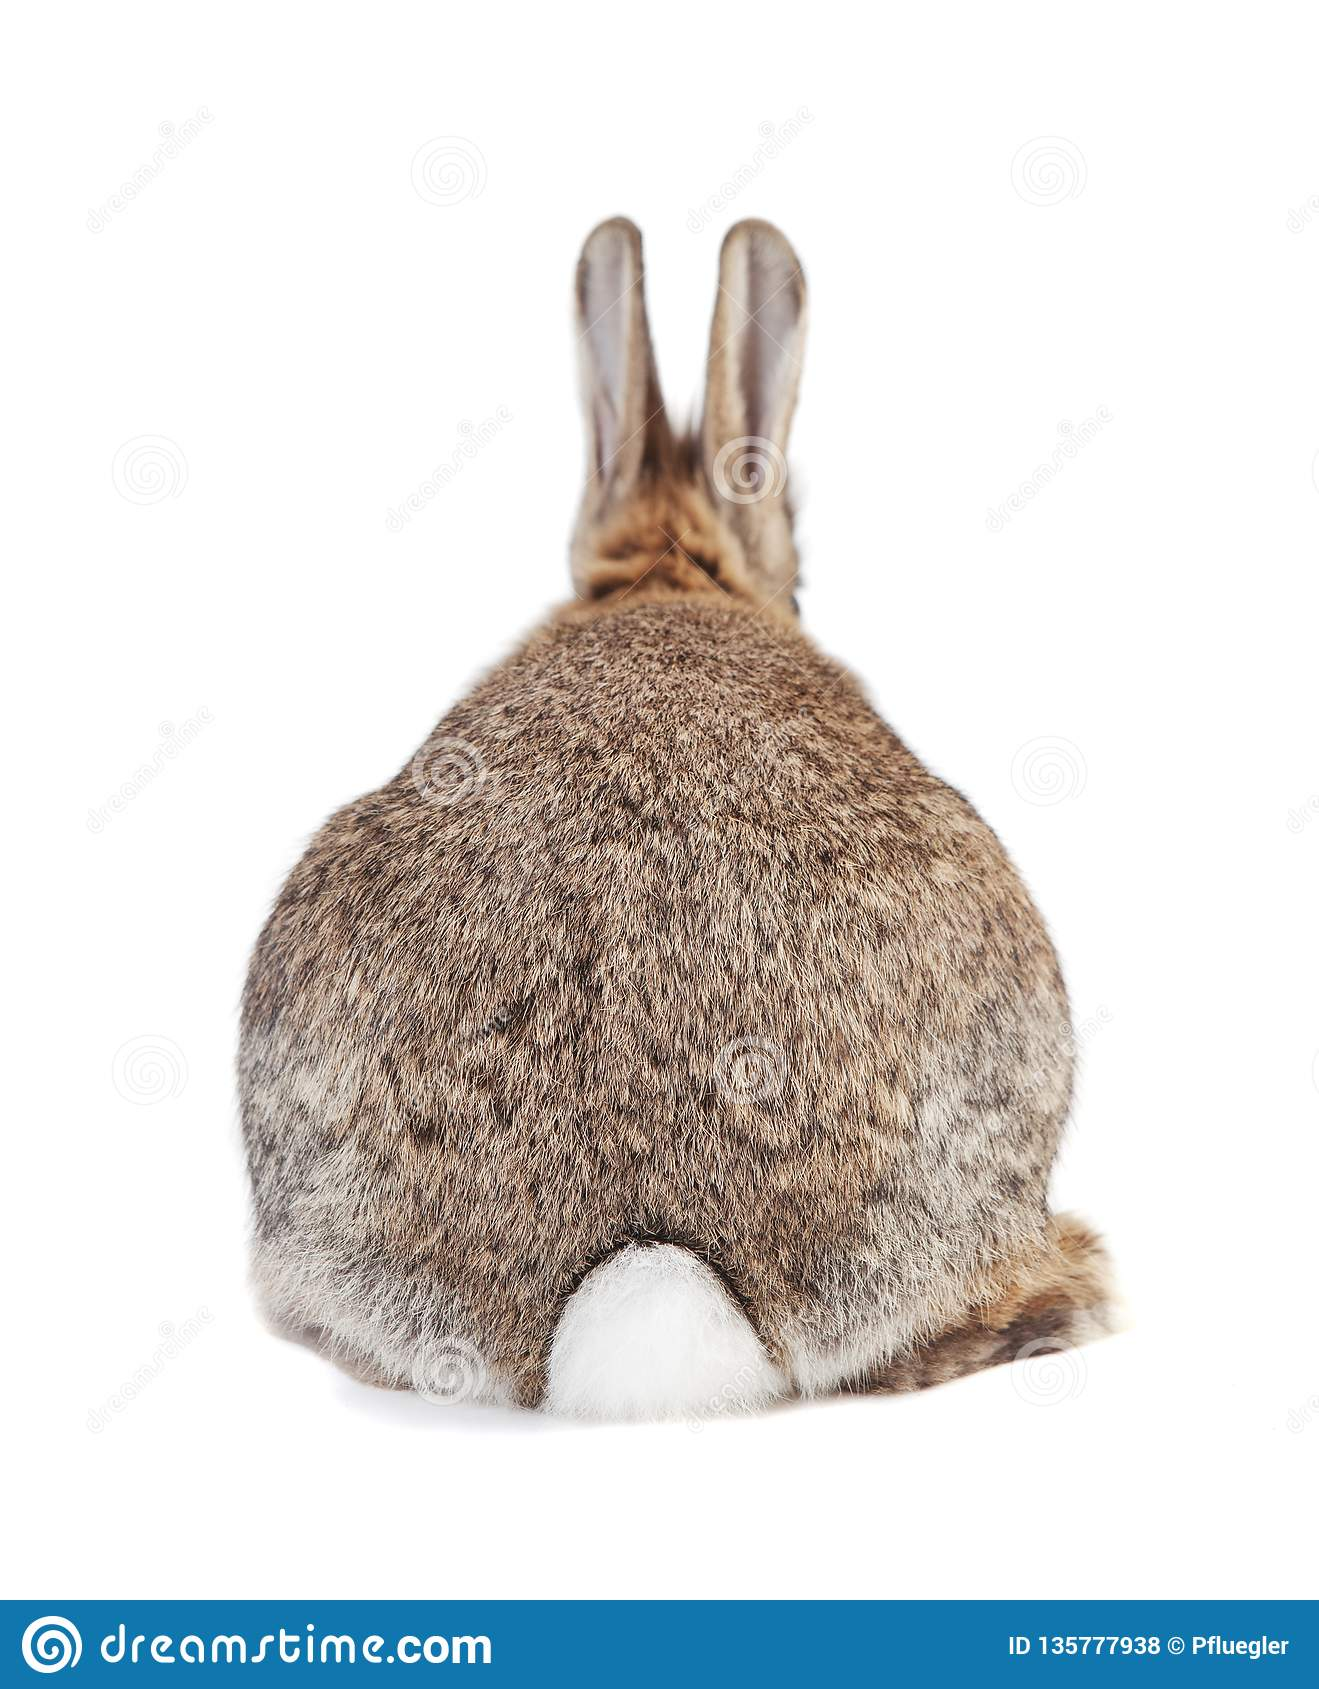 Rabbit from behind